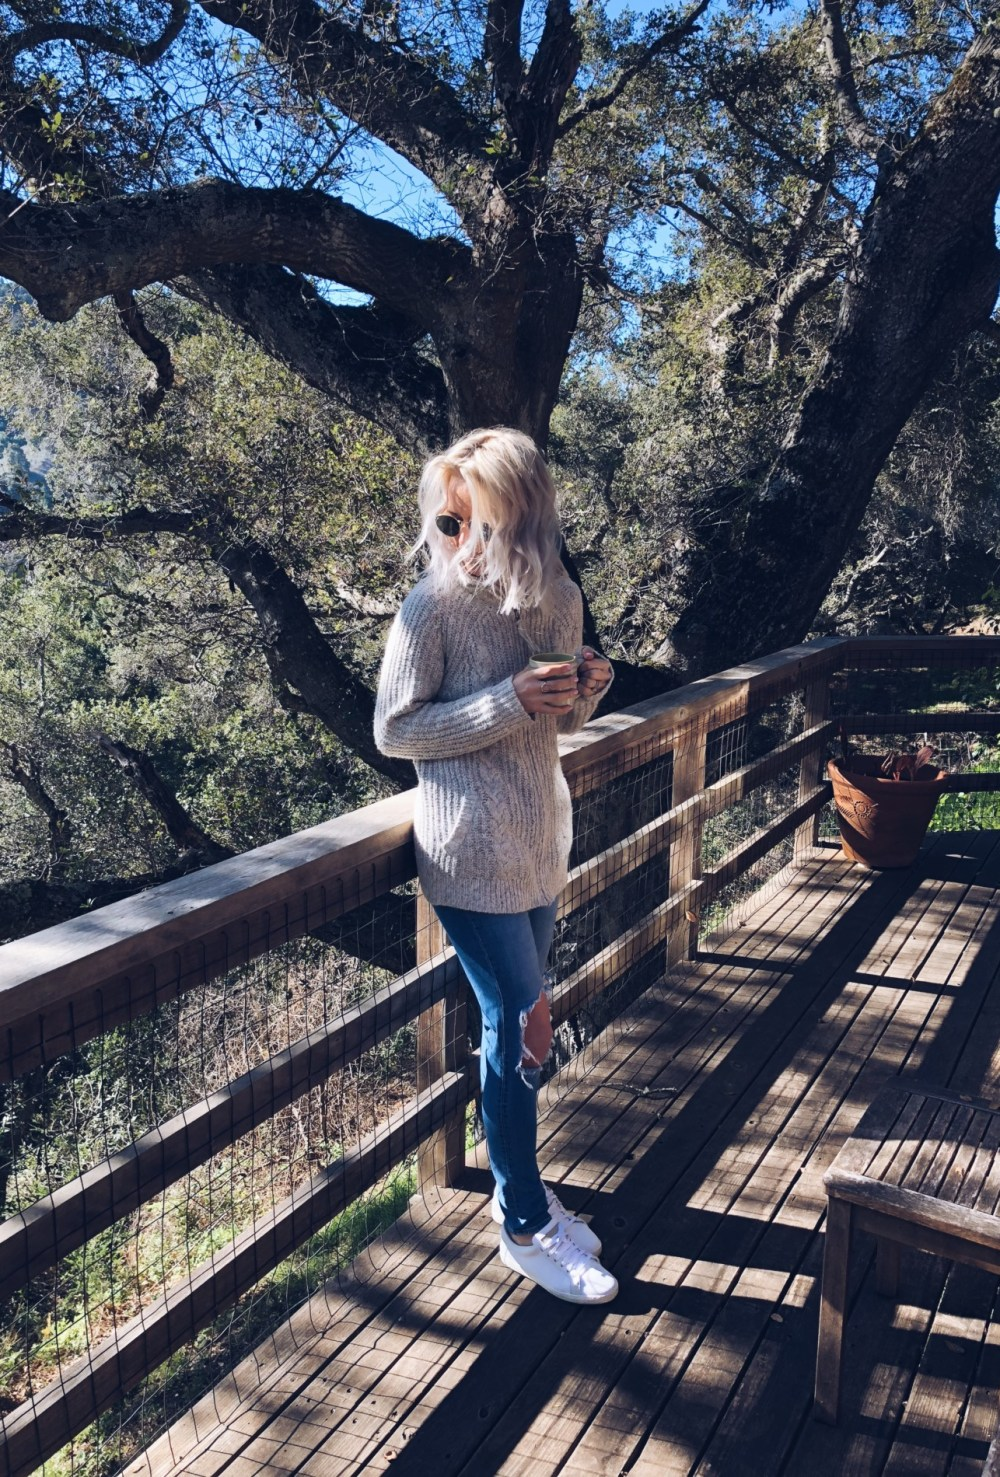 A Weekend In Big Sur- Where To Stay!